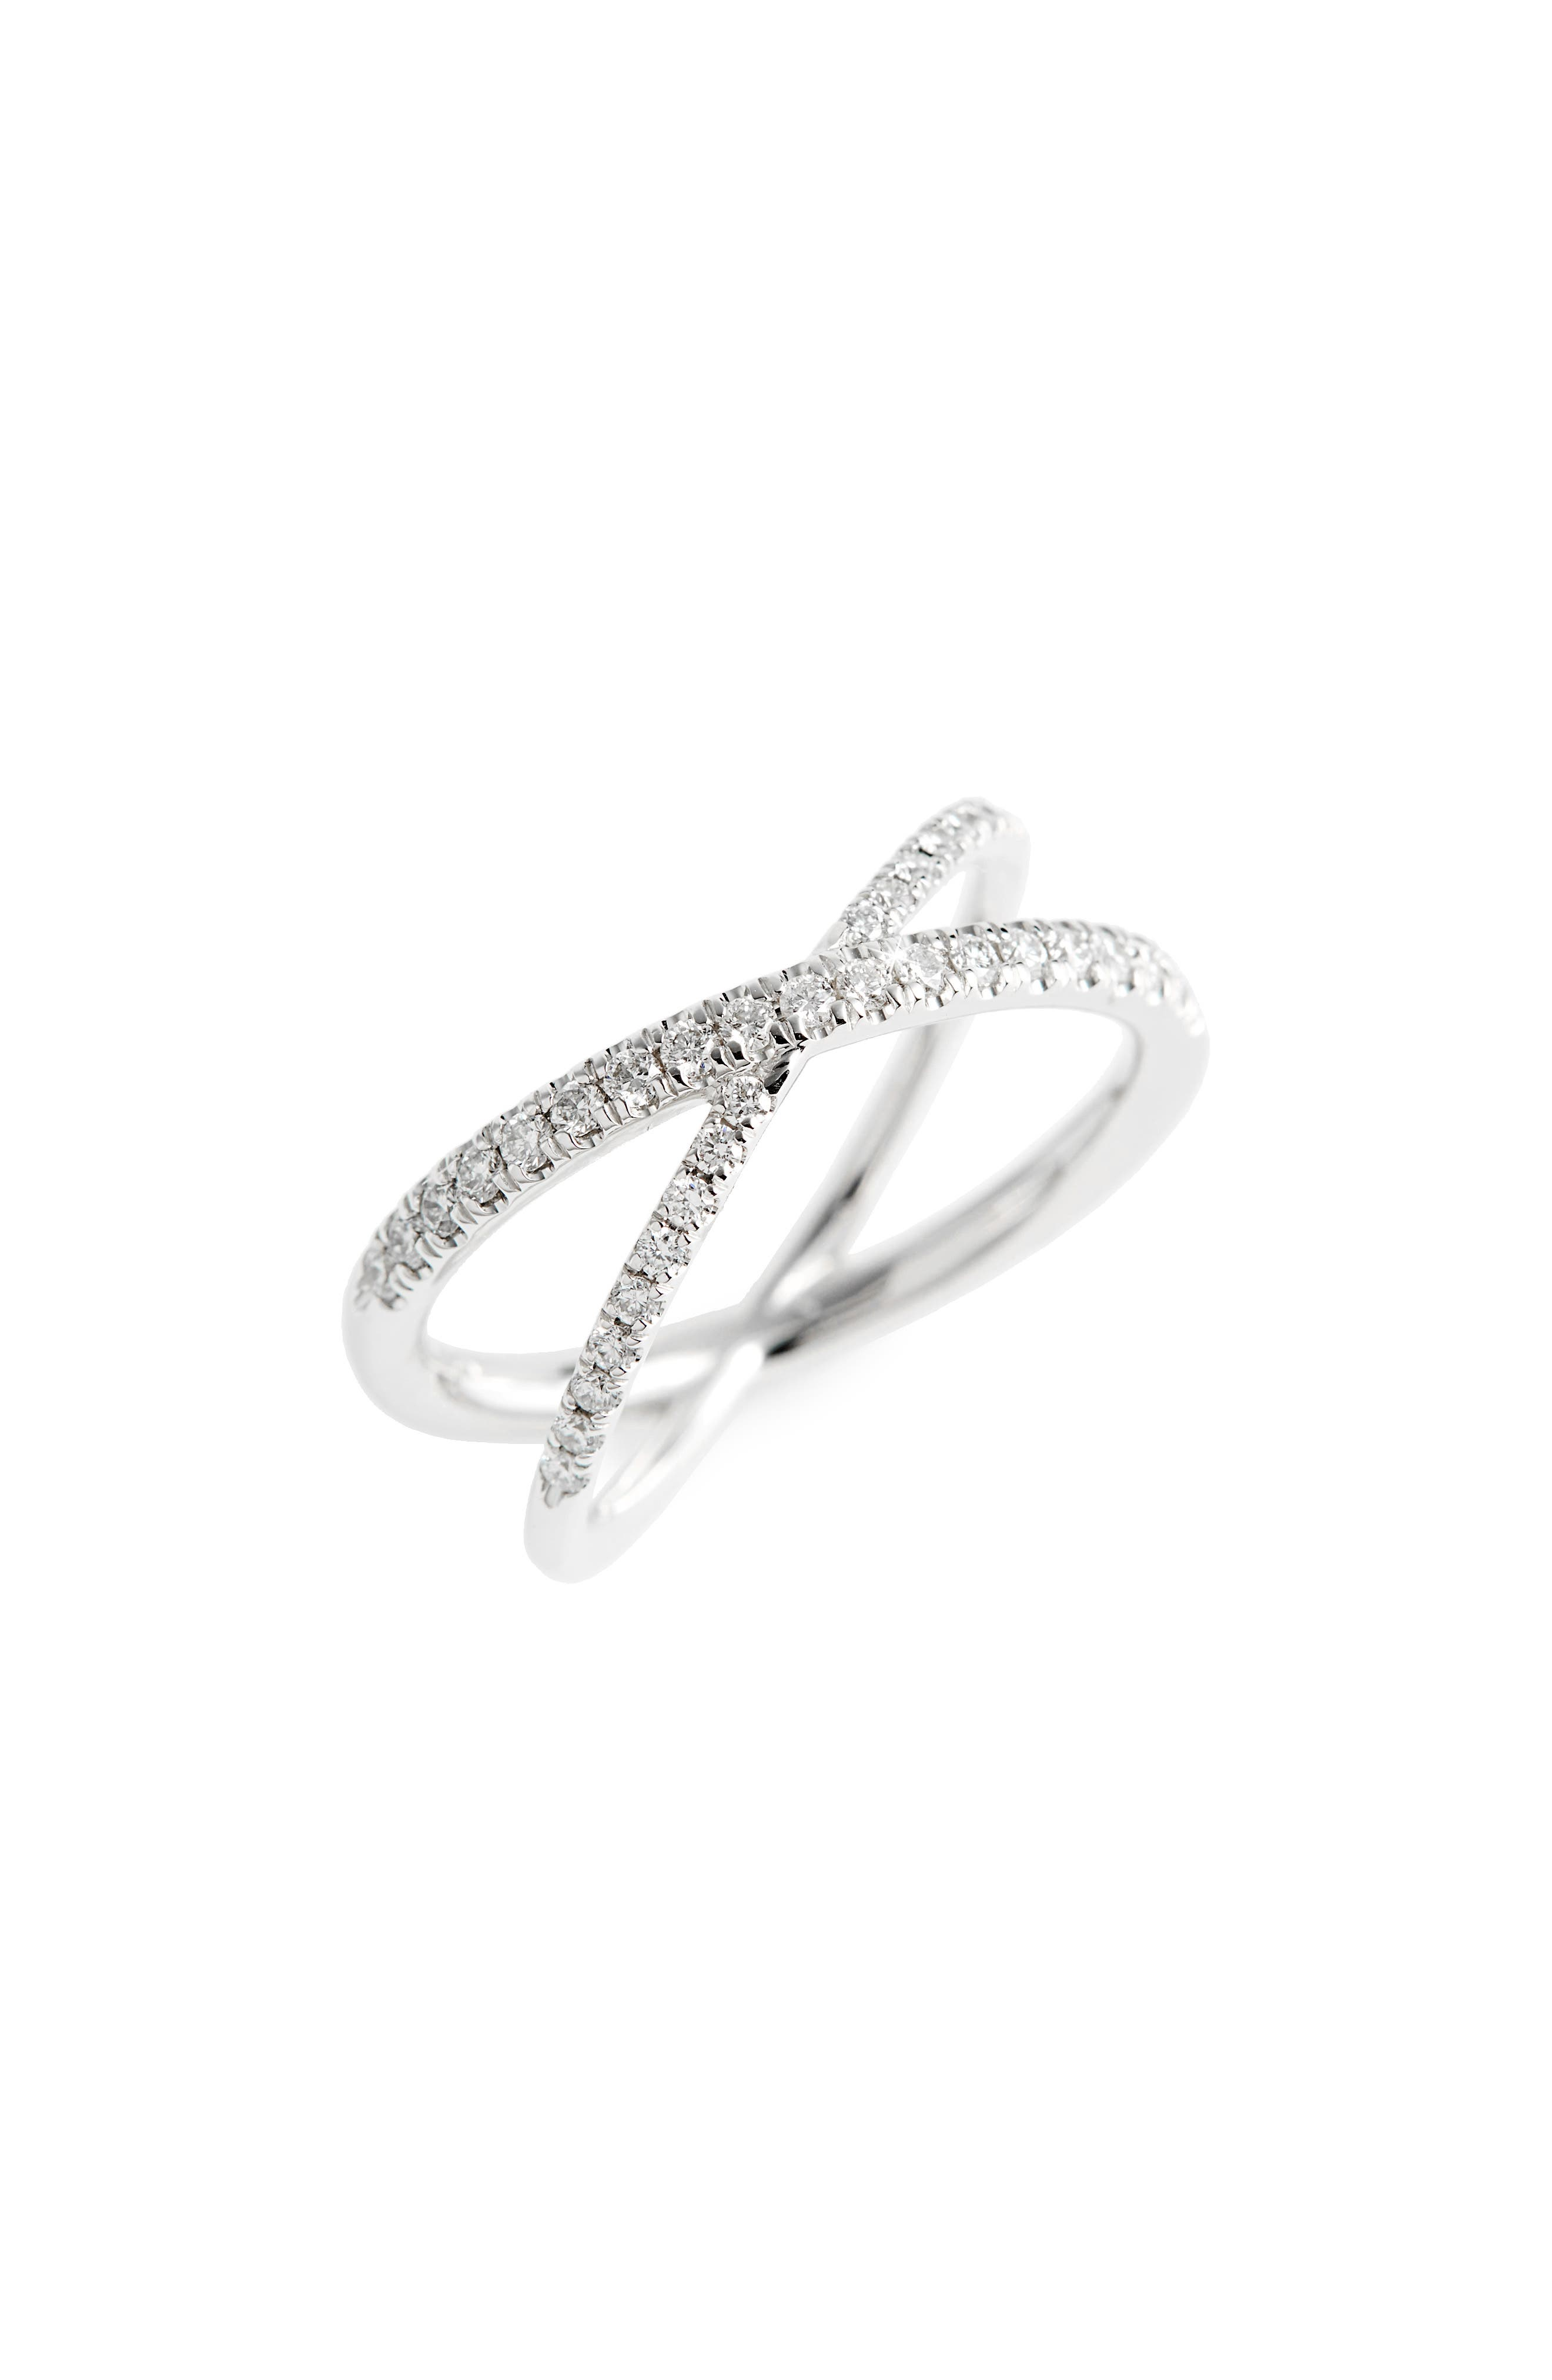 Diamond Crisscross Ring,                         Main,                         color, WHITE GOLD